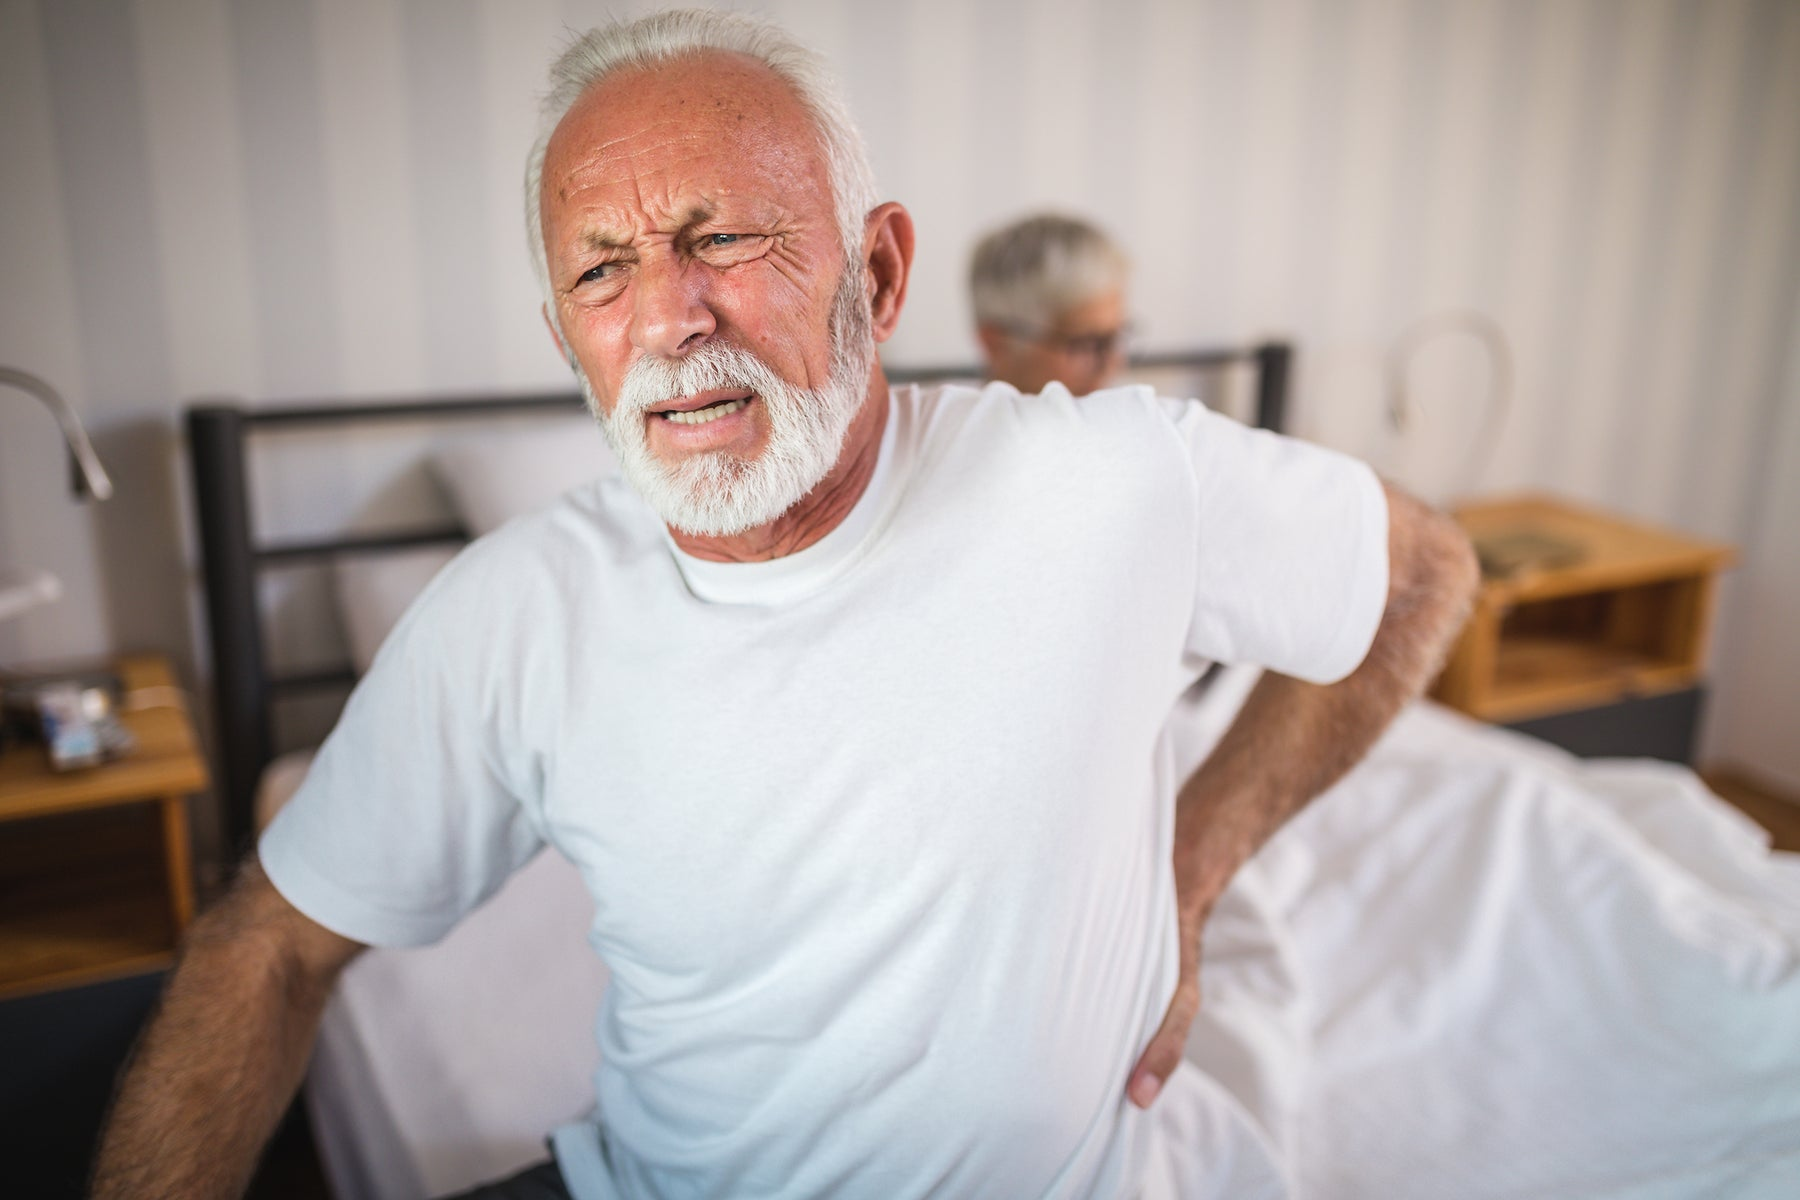 Does cannabidiol (CBD) work for chronic pain management?